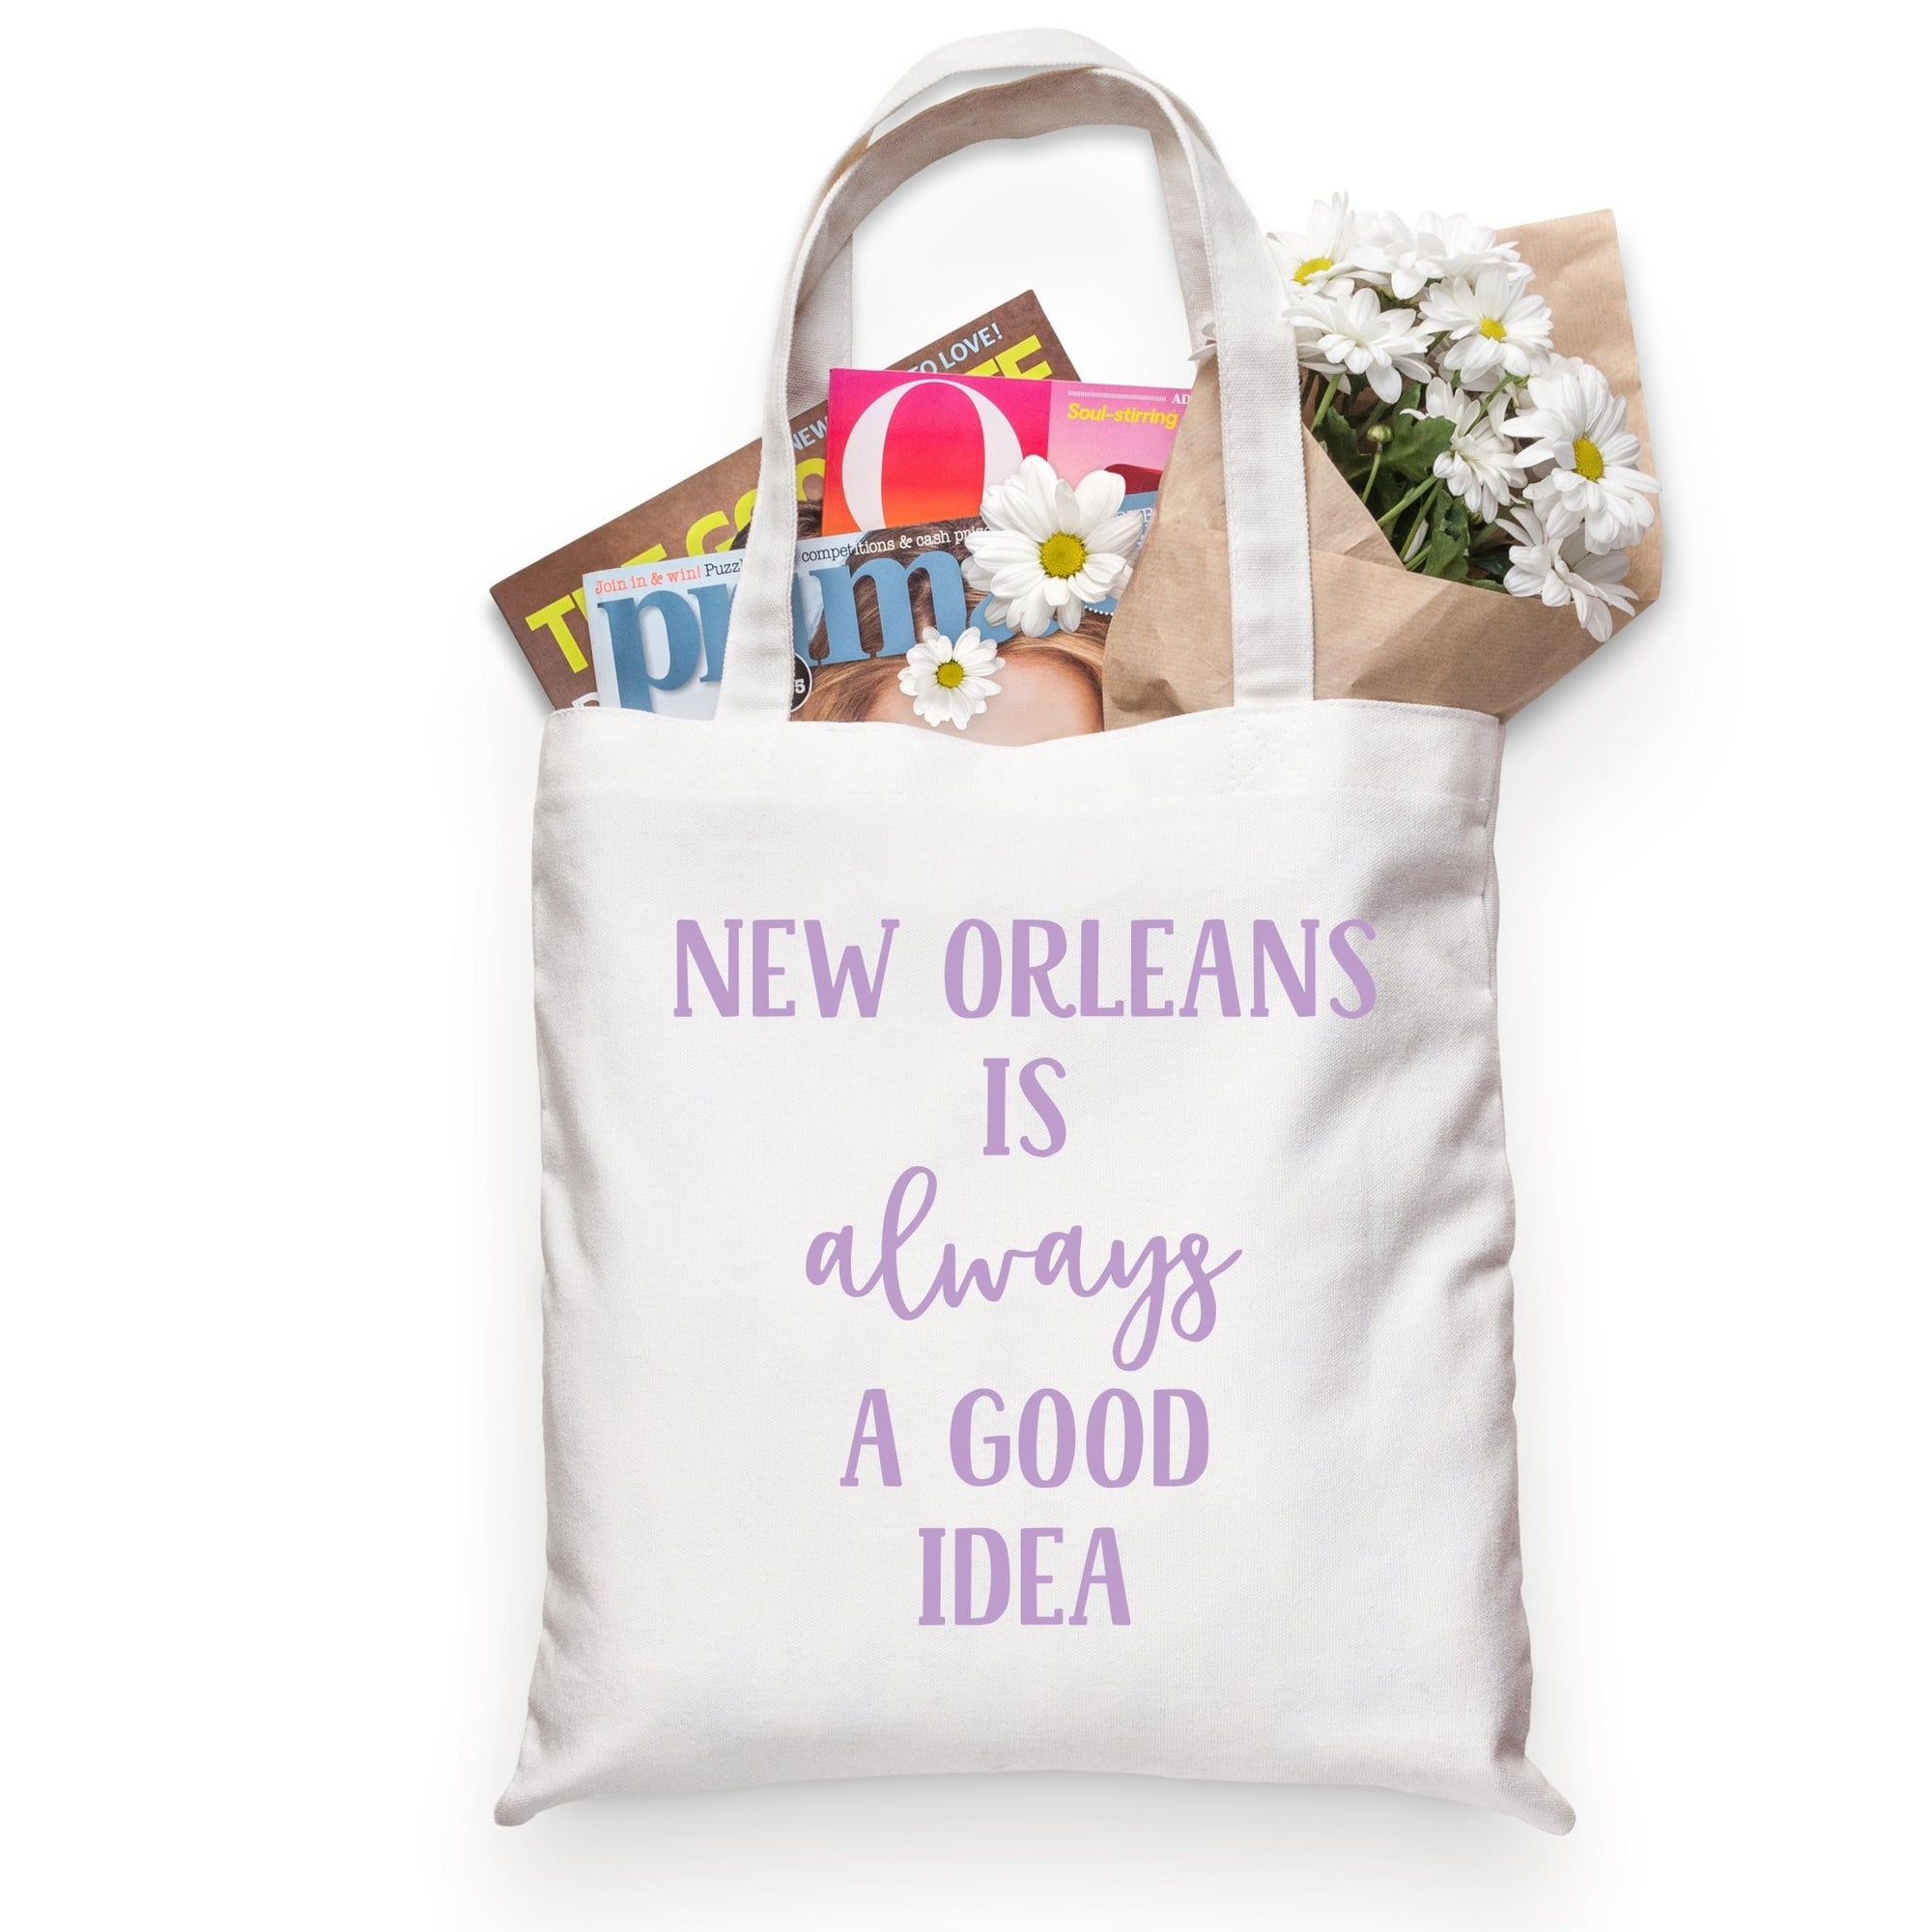 New Orleans Is Always A Good Idea Tote - Sprinkled With Pink #bachelorette #custom #gifts